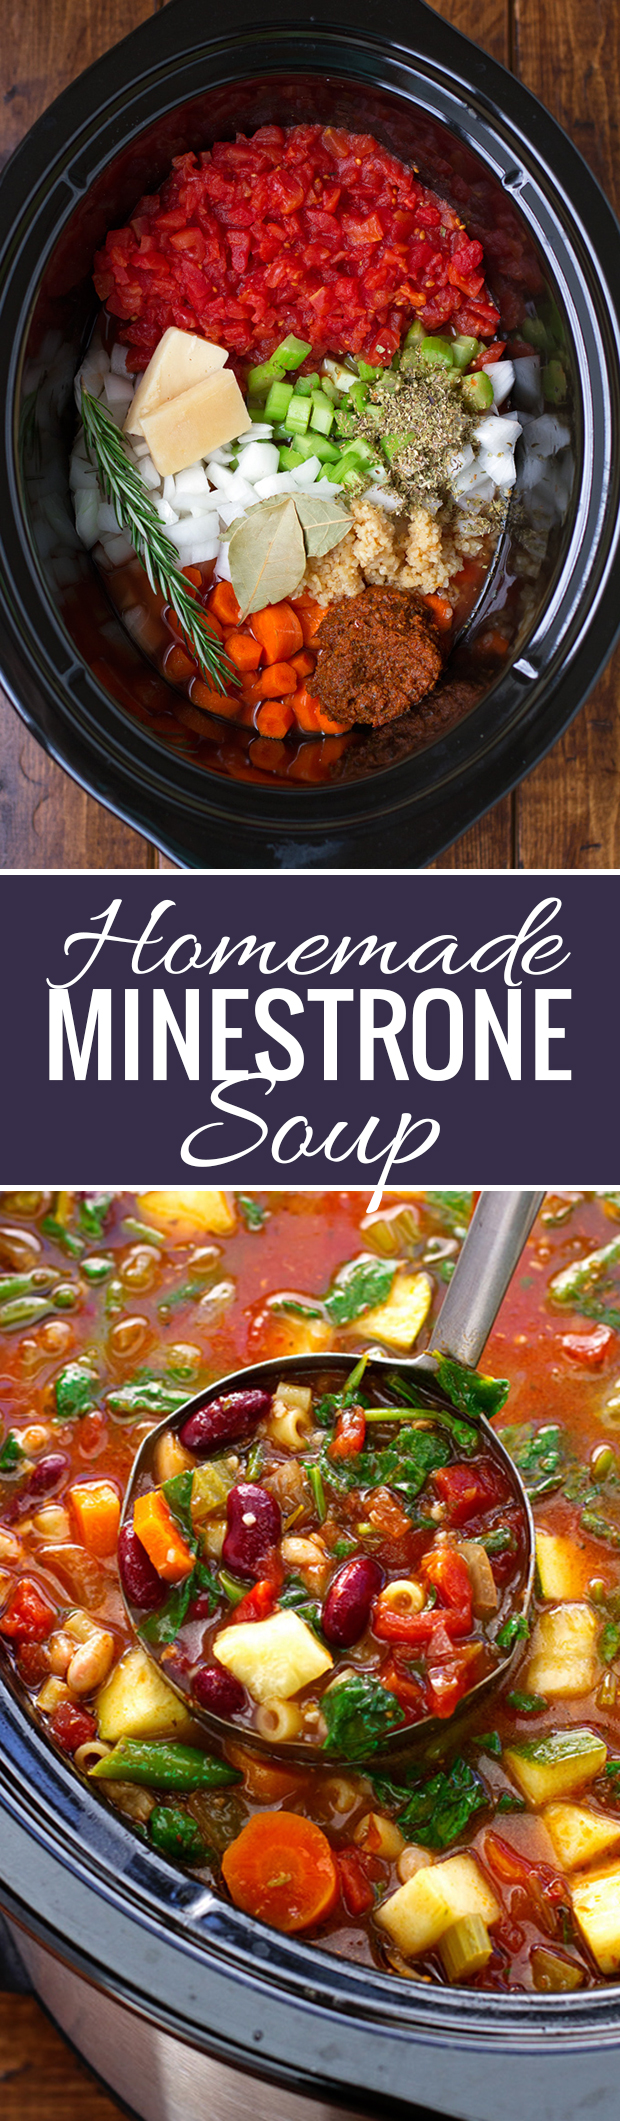 homemade minestrone soup slow cooker recipe little spice jar